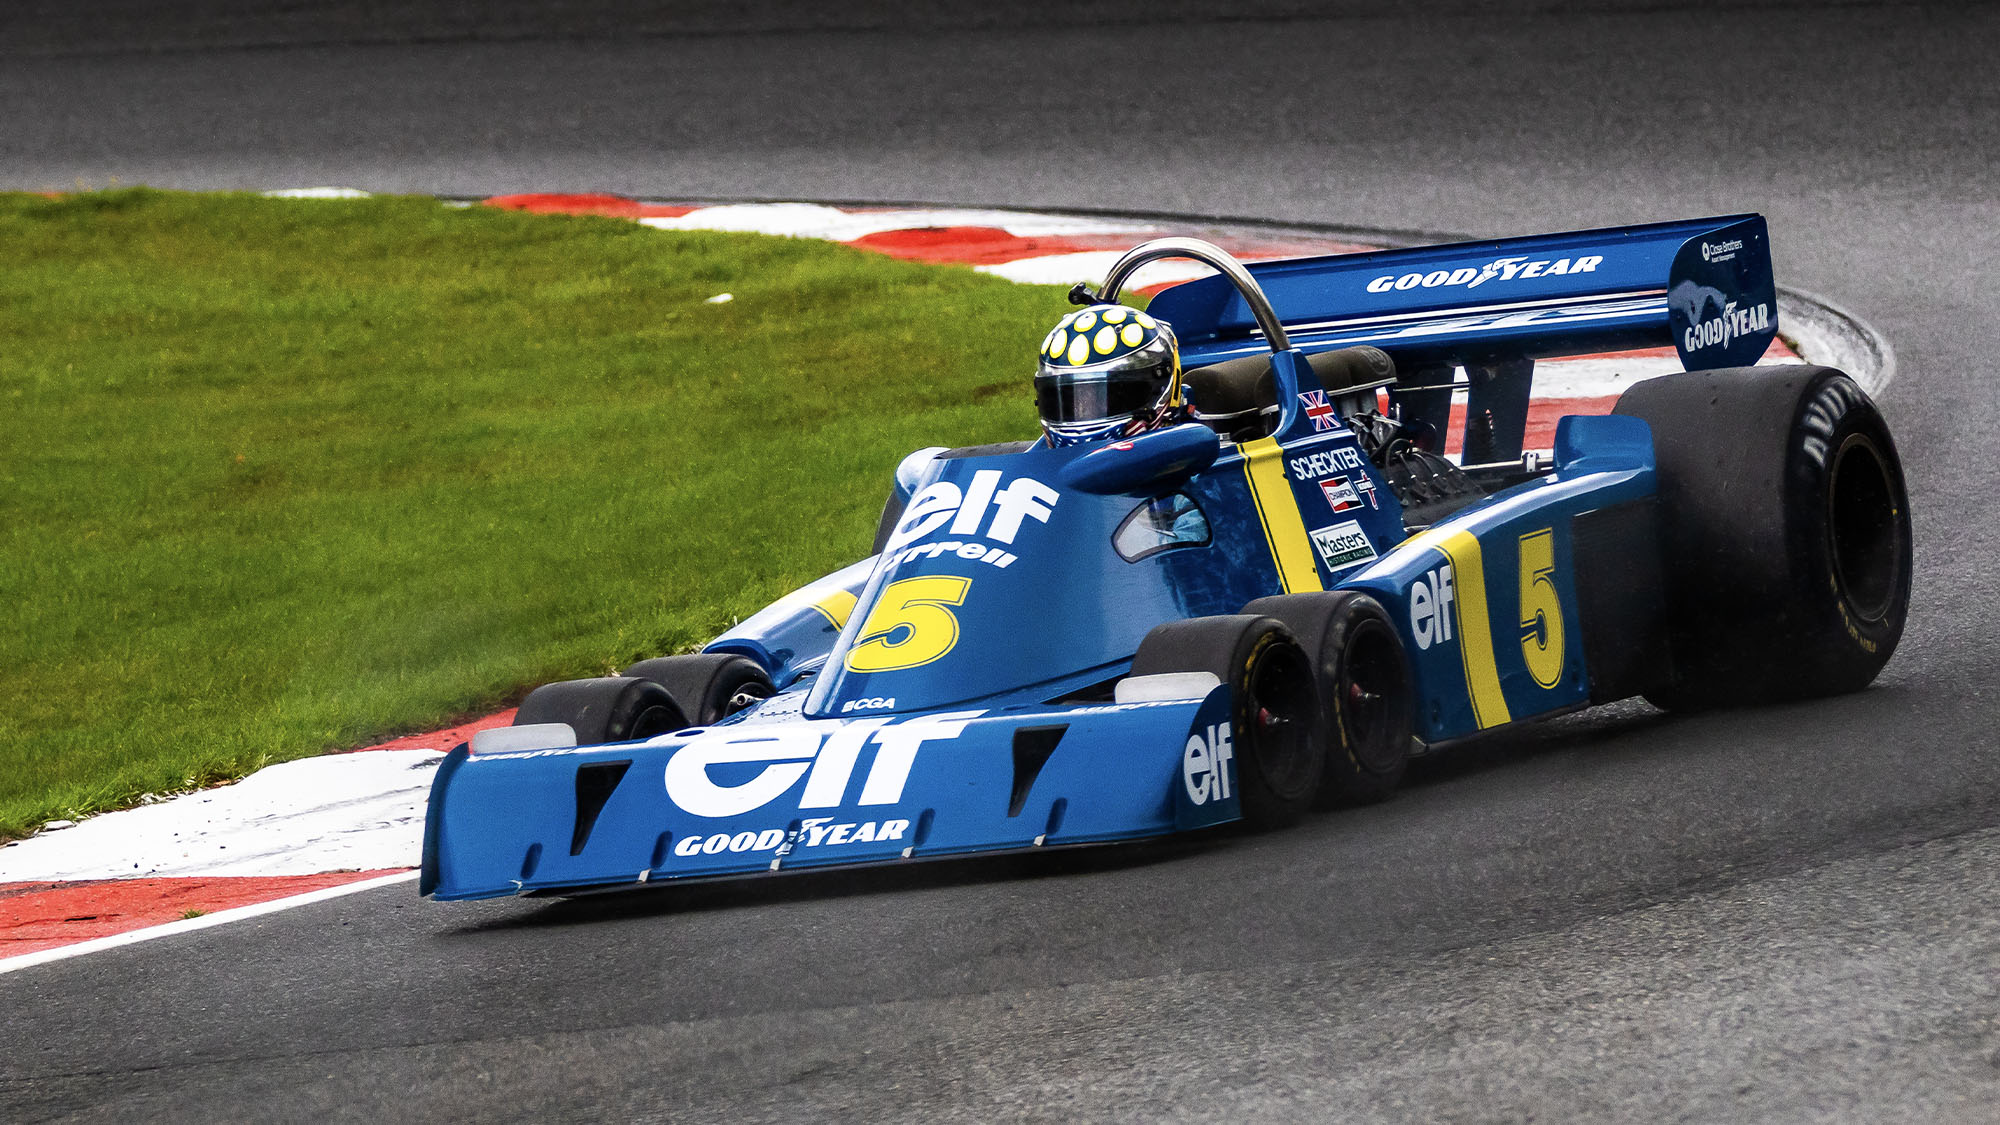 Back from the blueprints: Brands debut for six-wheeled Tyrrell P34 'continuation'